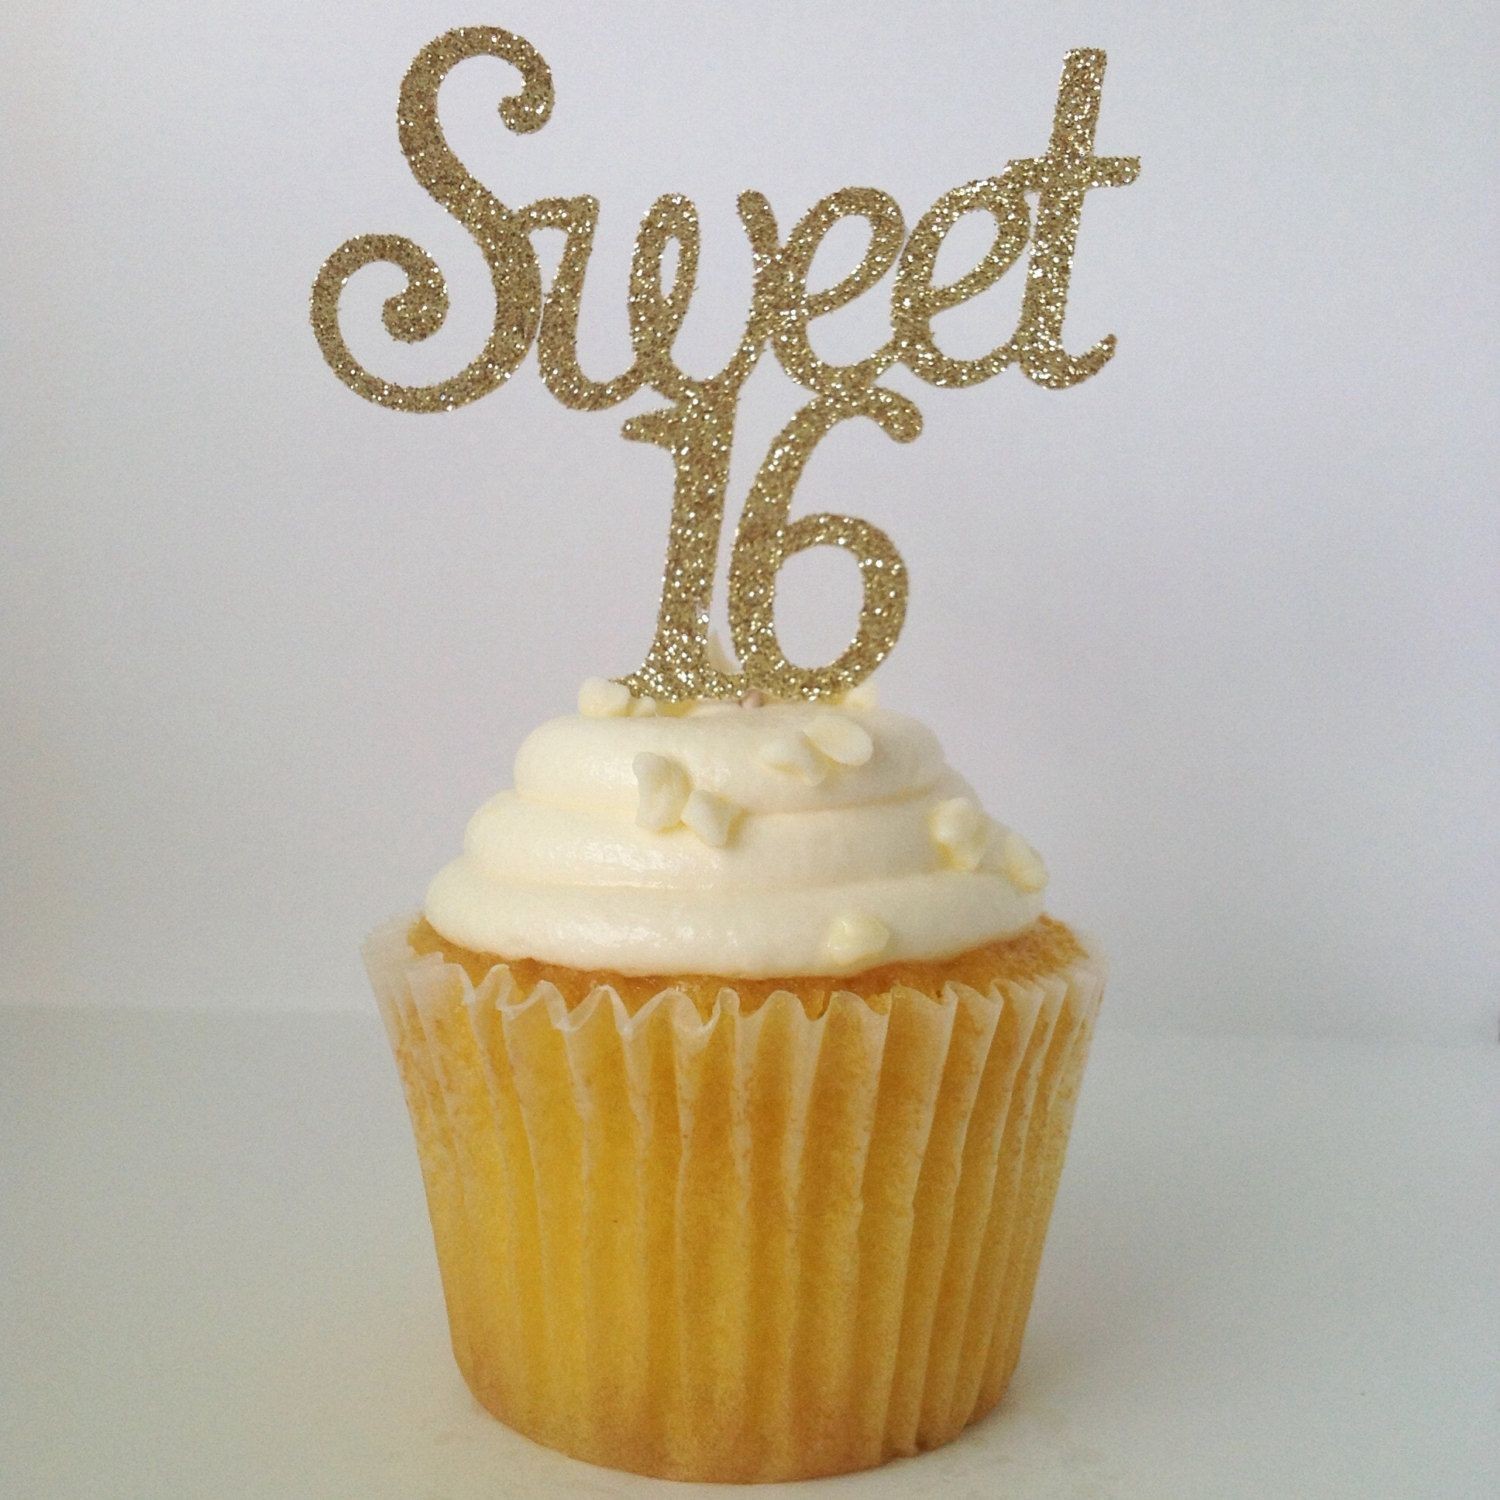 SWEET 16 CUPCAKE TOPPERS Happy Sweet 16 Gold Glitter Sweet 16